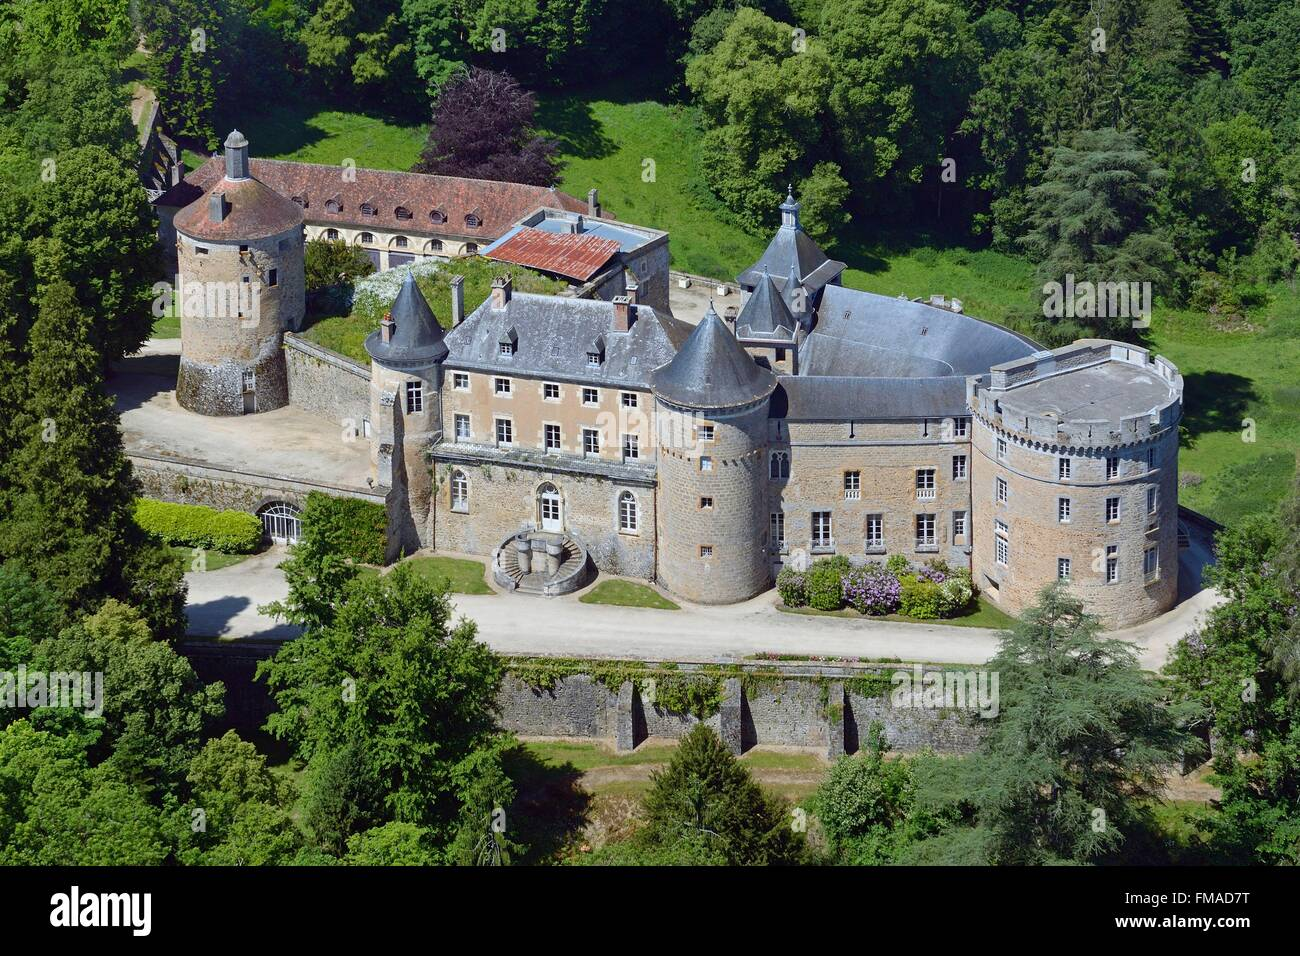 France, Yonne, Chastellux sur Cure, the castle (aerial view) - Stock Image